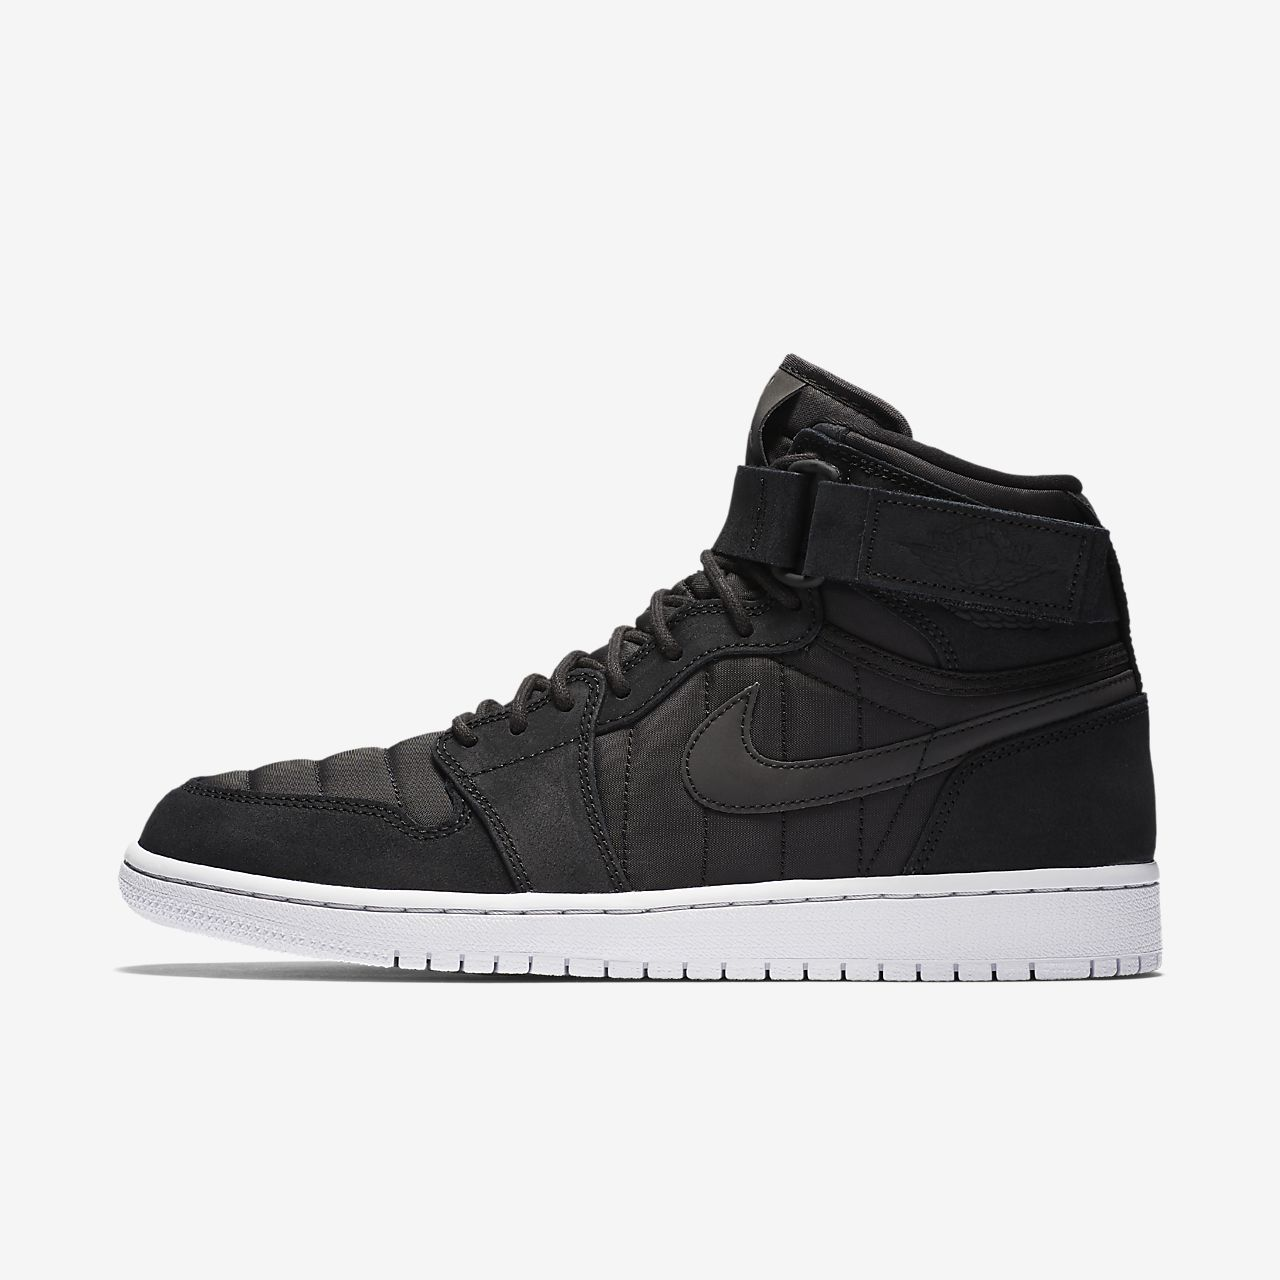 Men's Nike Air Jordan 1 High Strap Black Red Sneakers : H76y2001